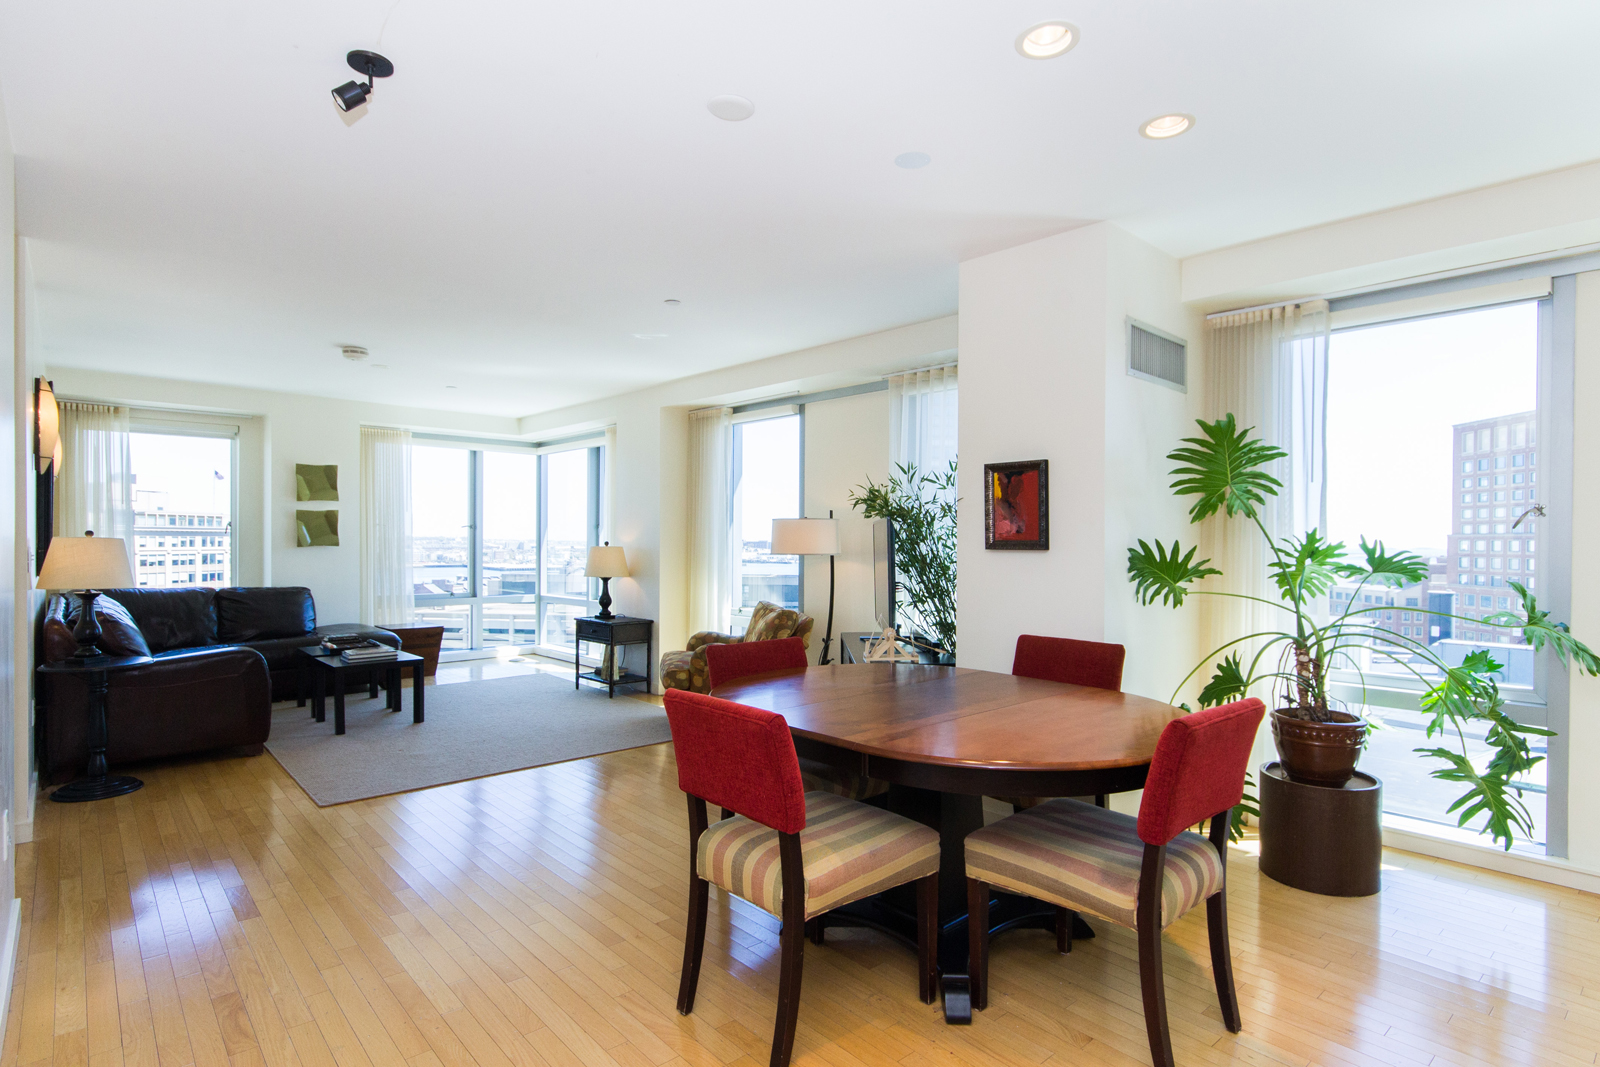 Condominium for Sale at Highly Sought After Luxury Building 80 Broad Street PH 1203 Waterfront, Boston, Massachusetts, 02110 United States